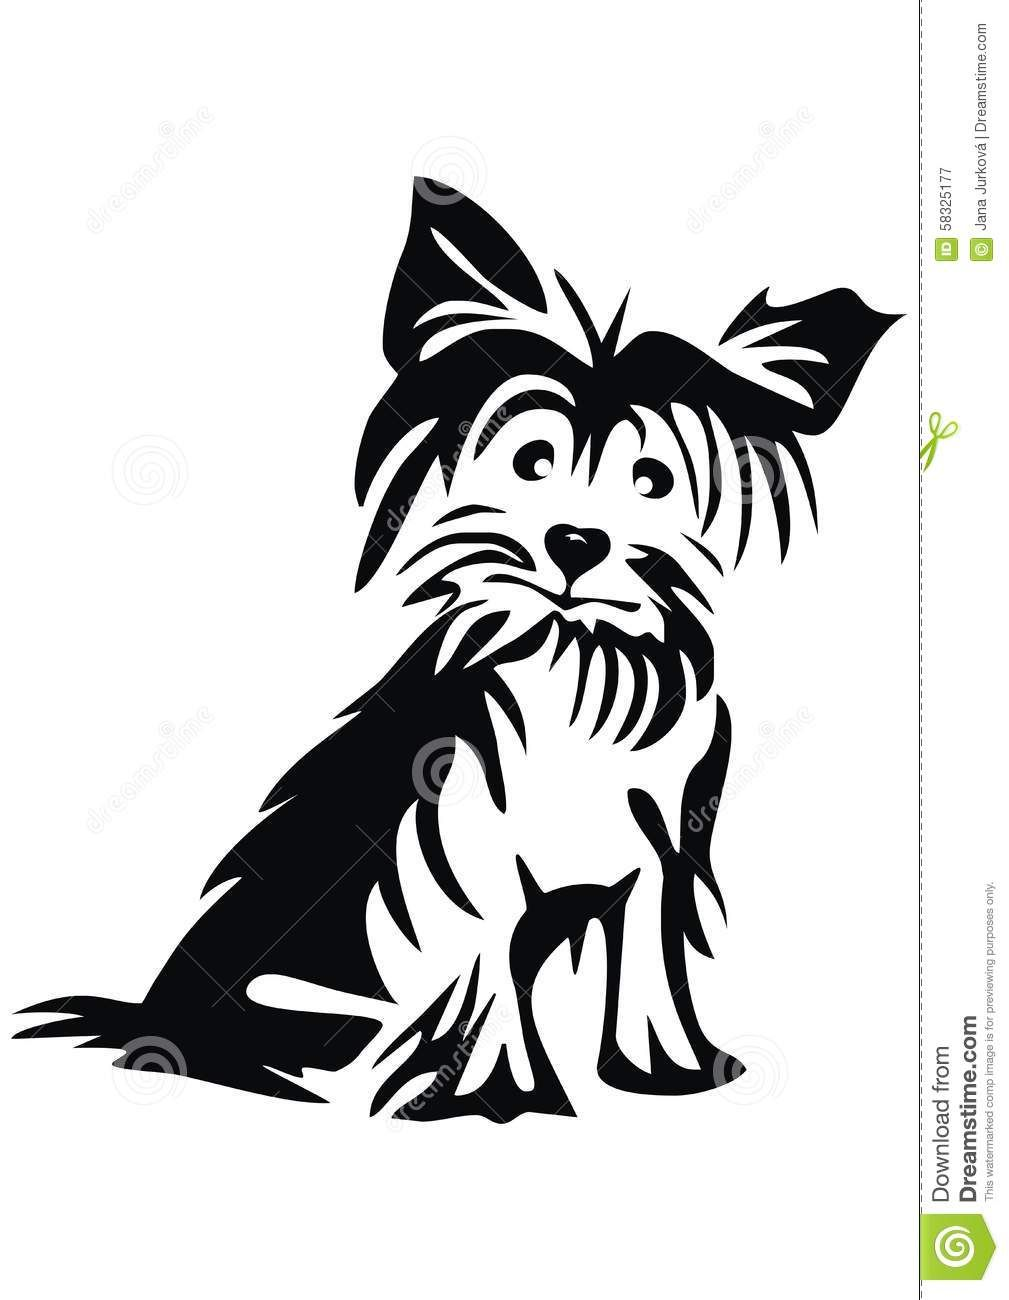 Coloring pages yorkie - Yorkie Silhouette Yahoo Image Search Results